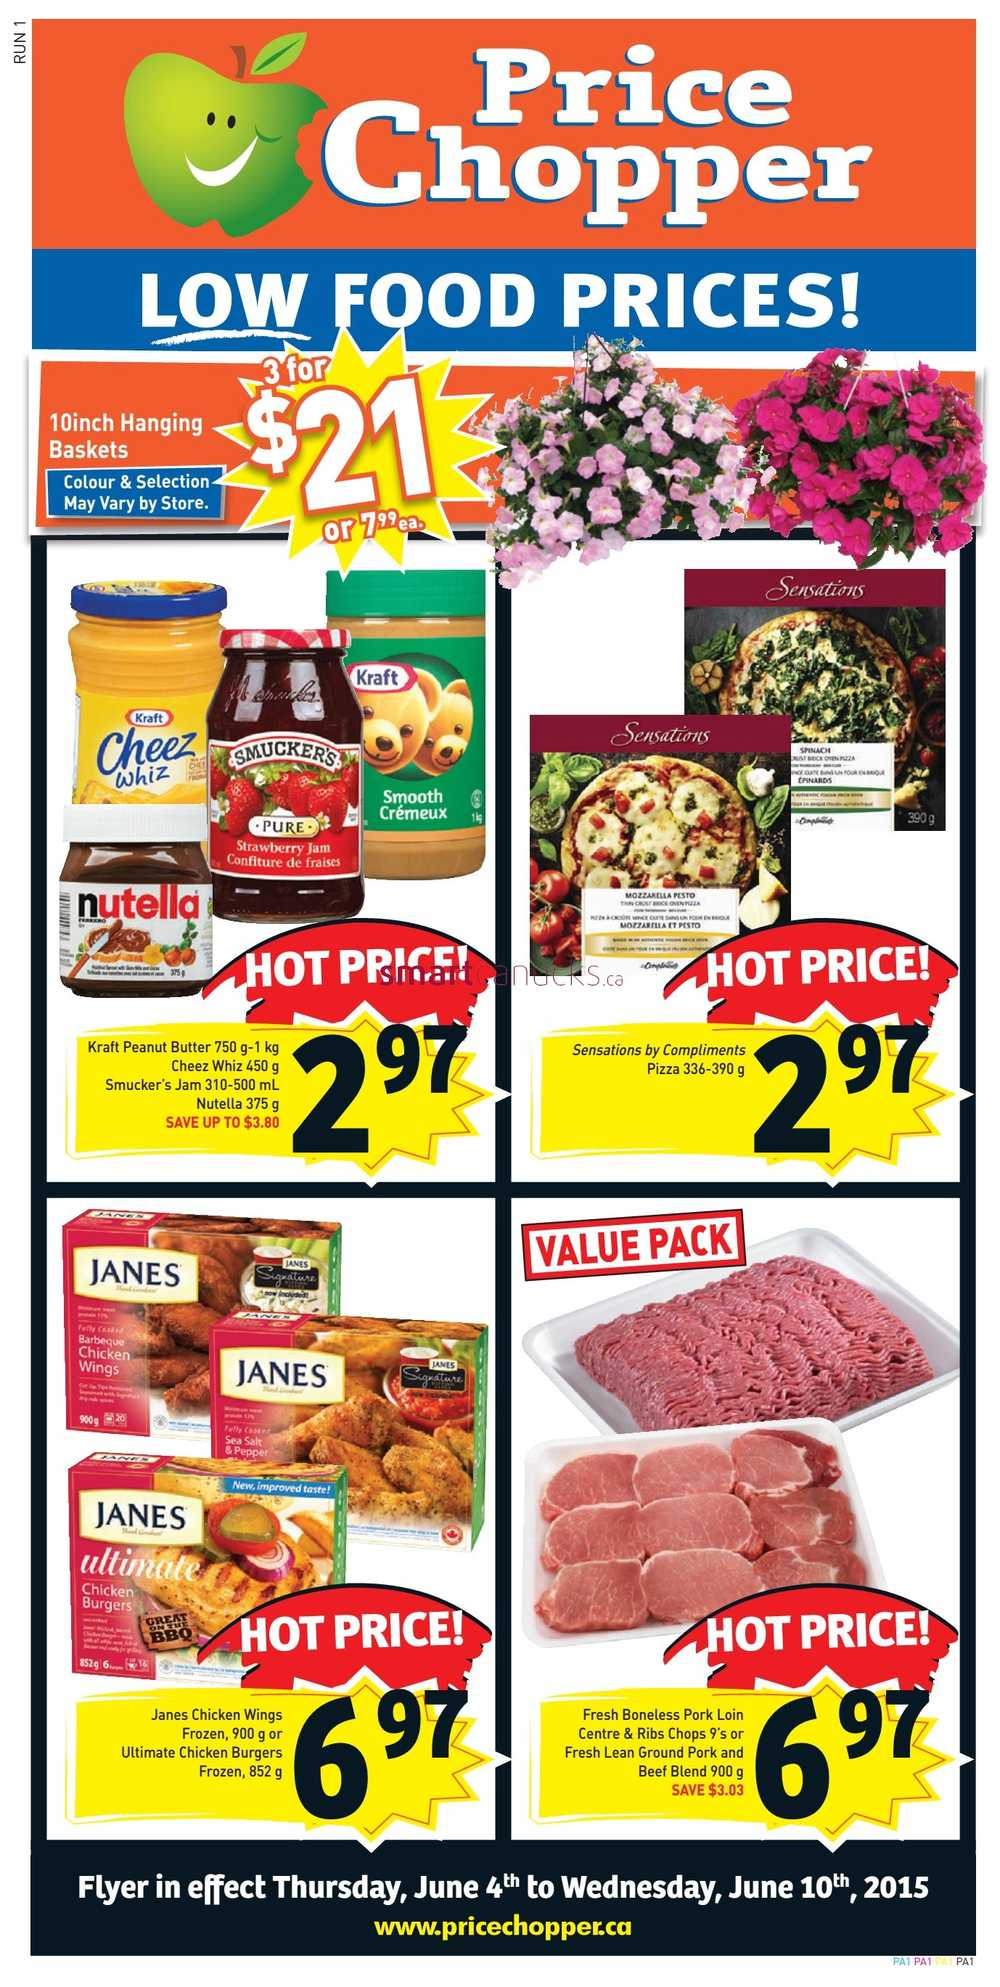 Price Chopper Flyer Images